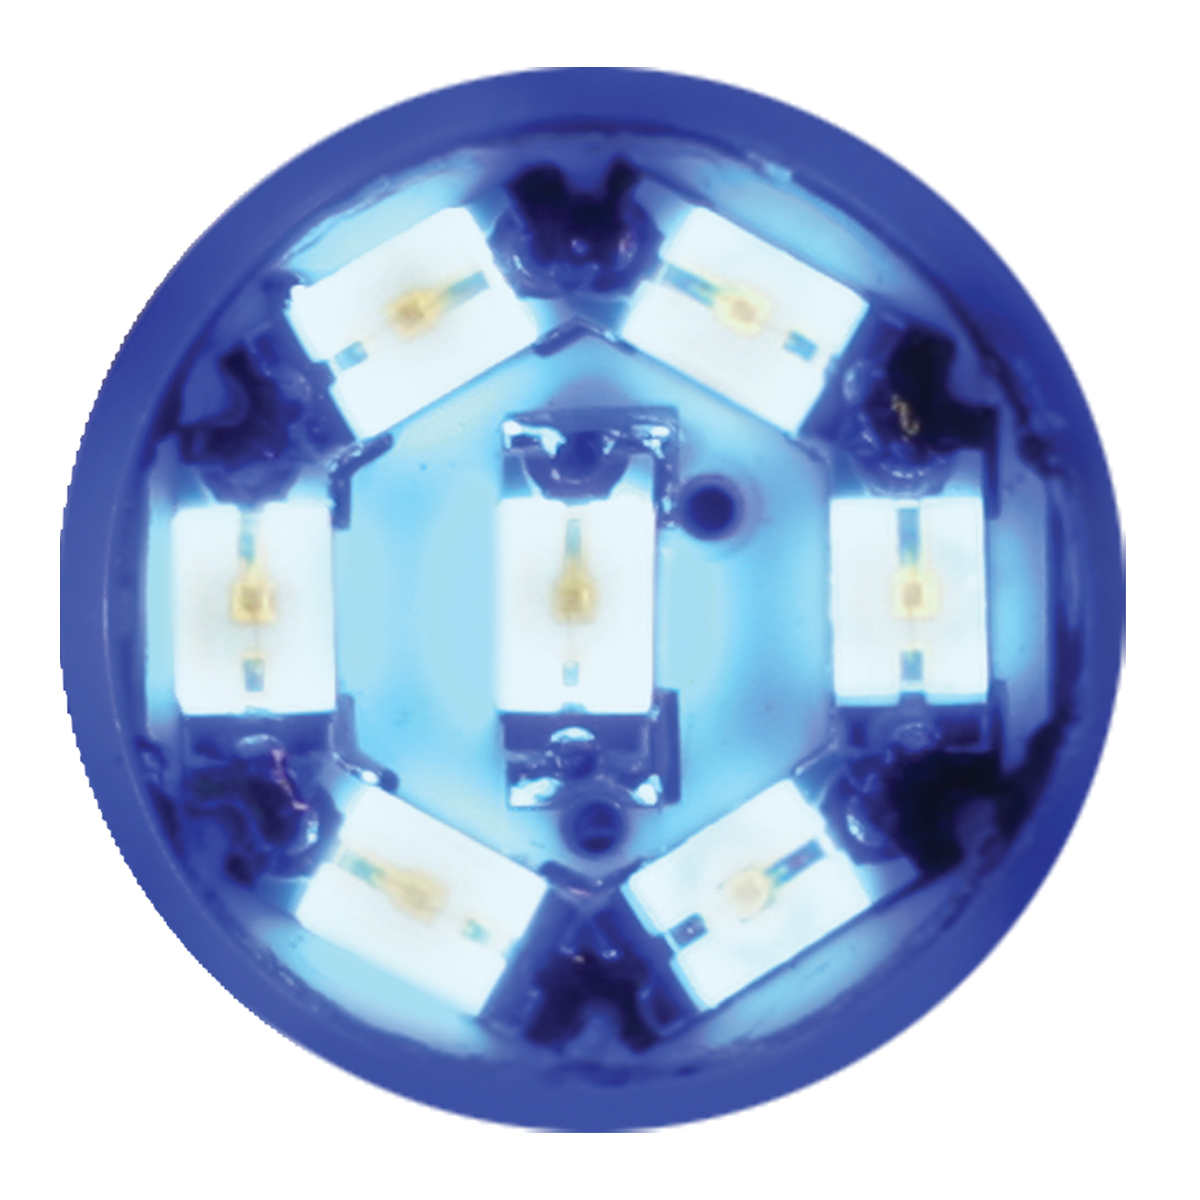 74901 Blue 194/168 Dome Type 7 LED Light Bulb